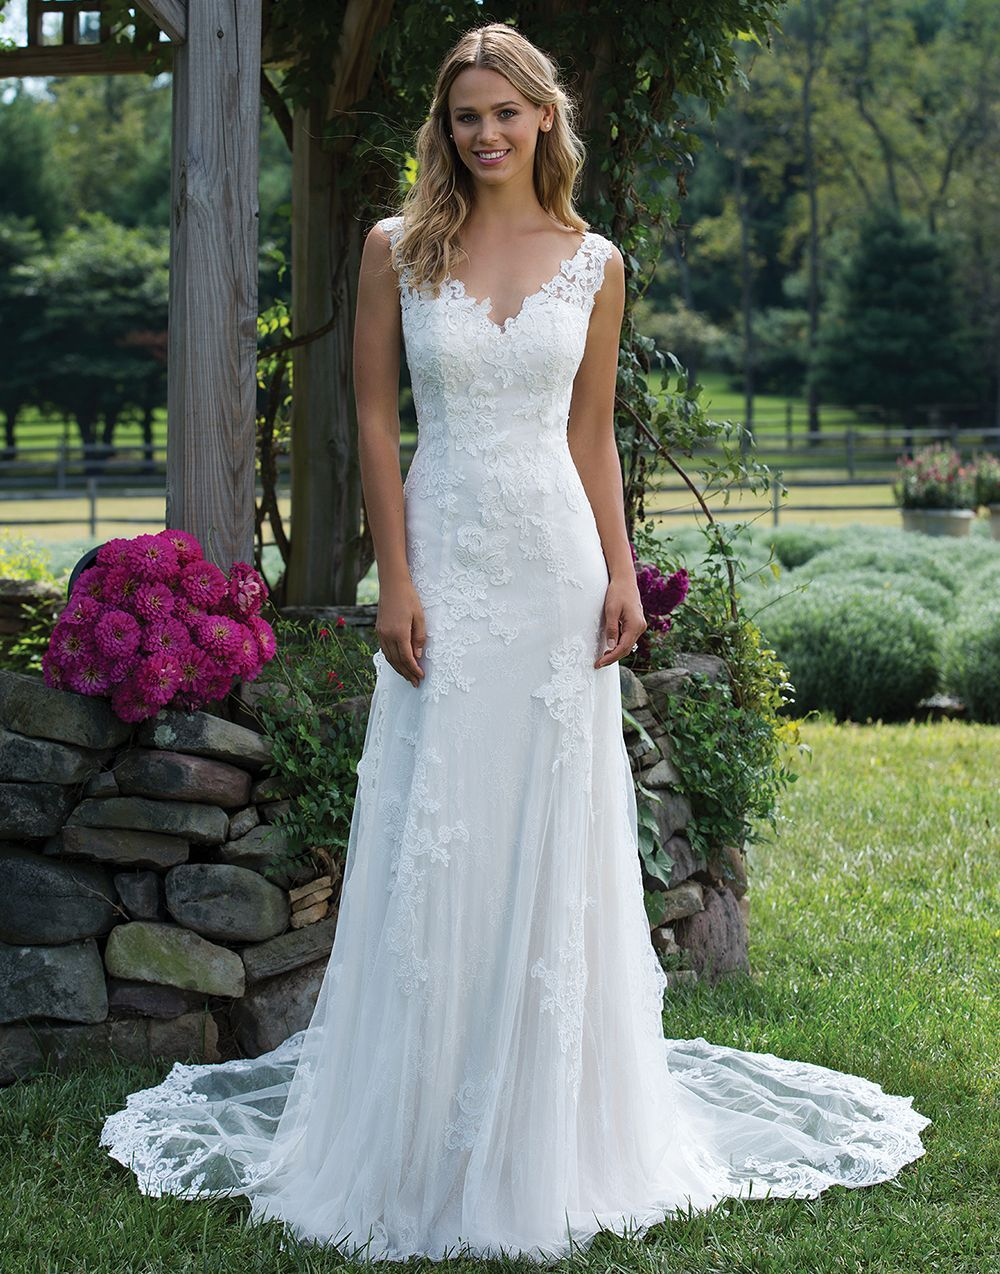 Lightweight wedding dresses  Sincerity wedding dress style  The stunning illusion and lace